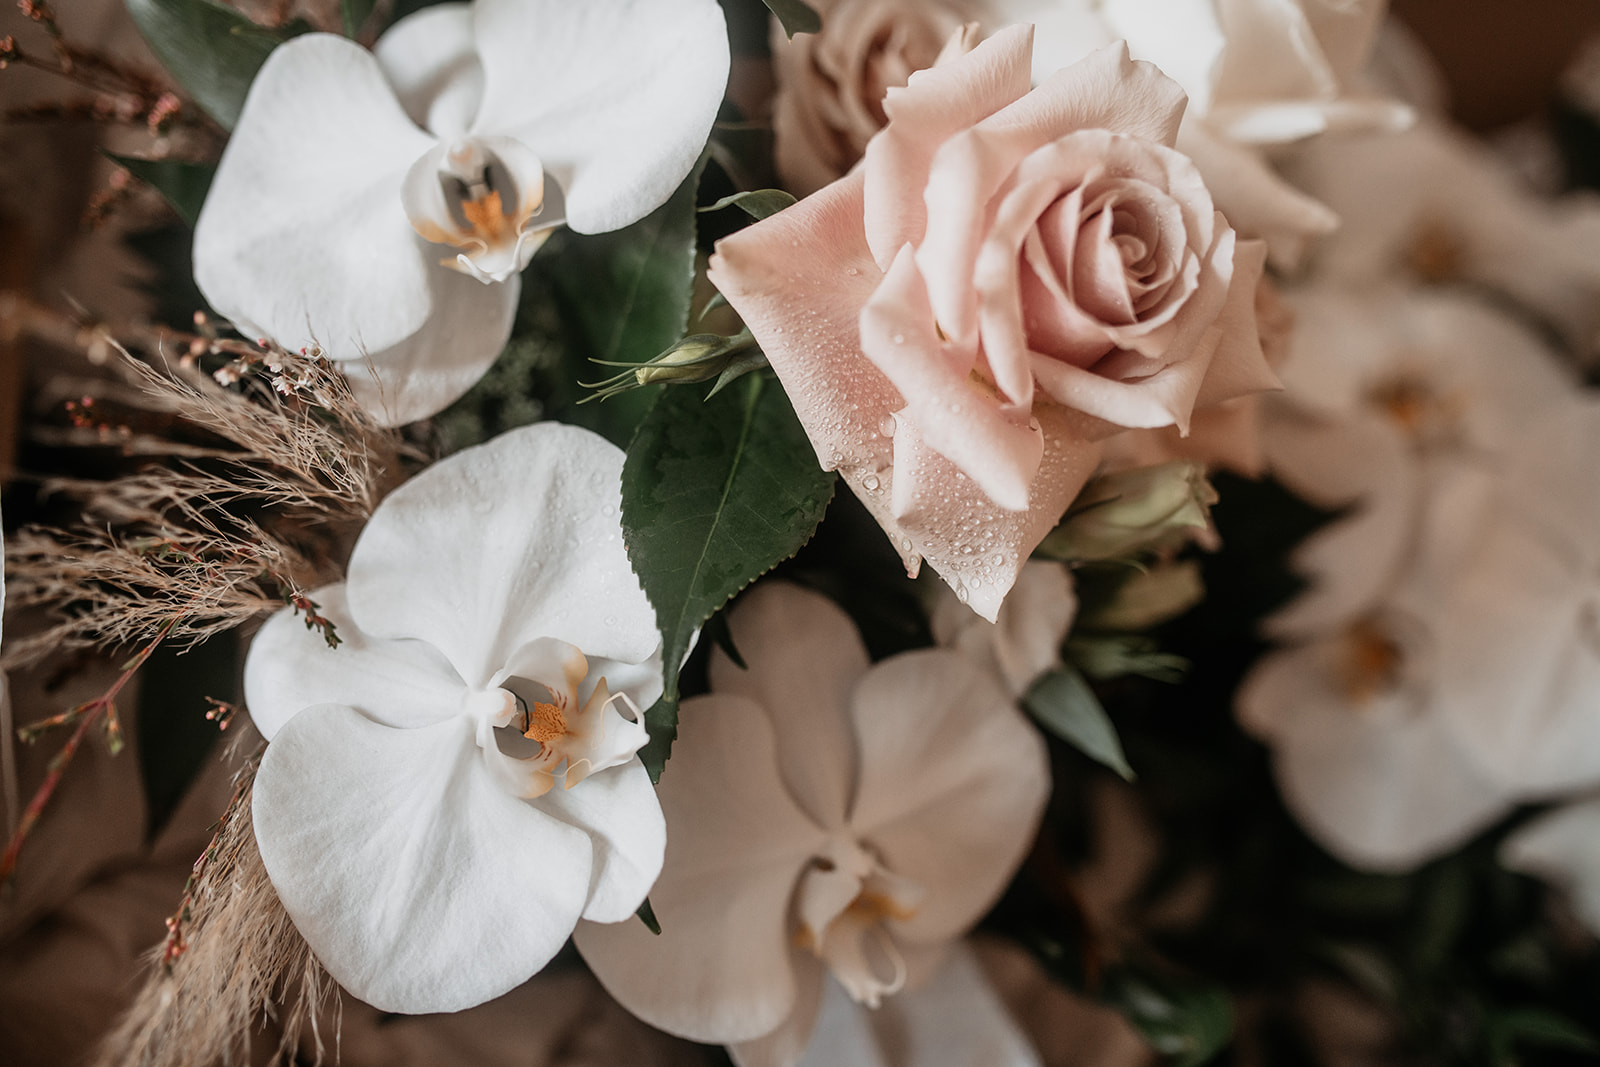 Coastal Chic Blooms in all Whites and Antique Pinks Tones